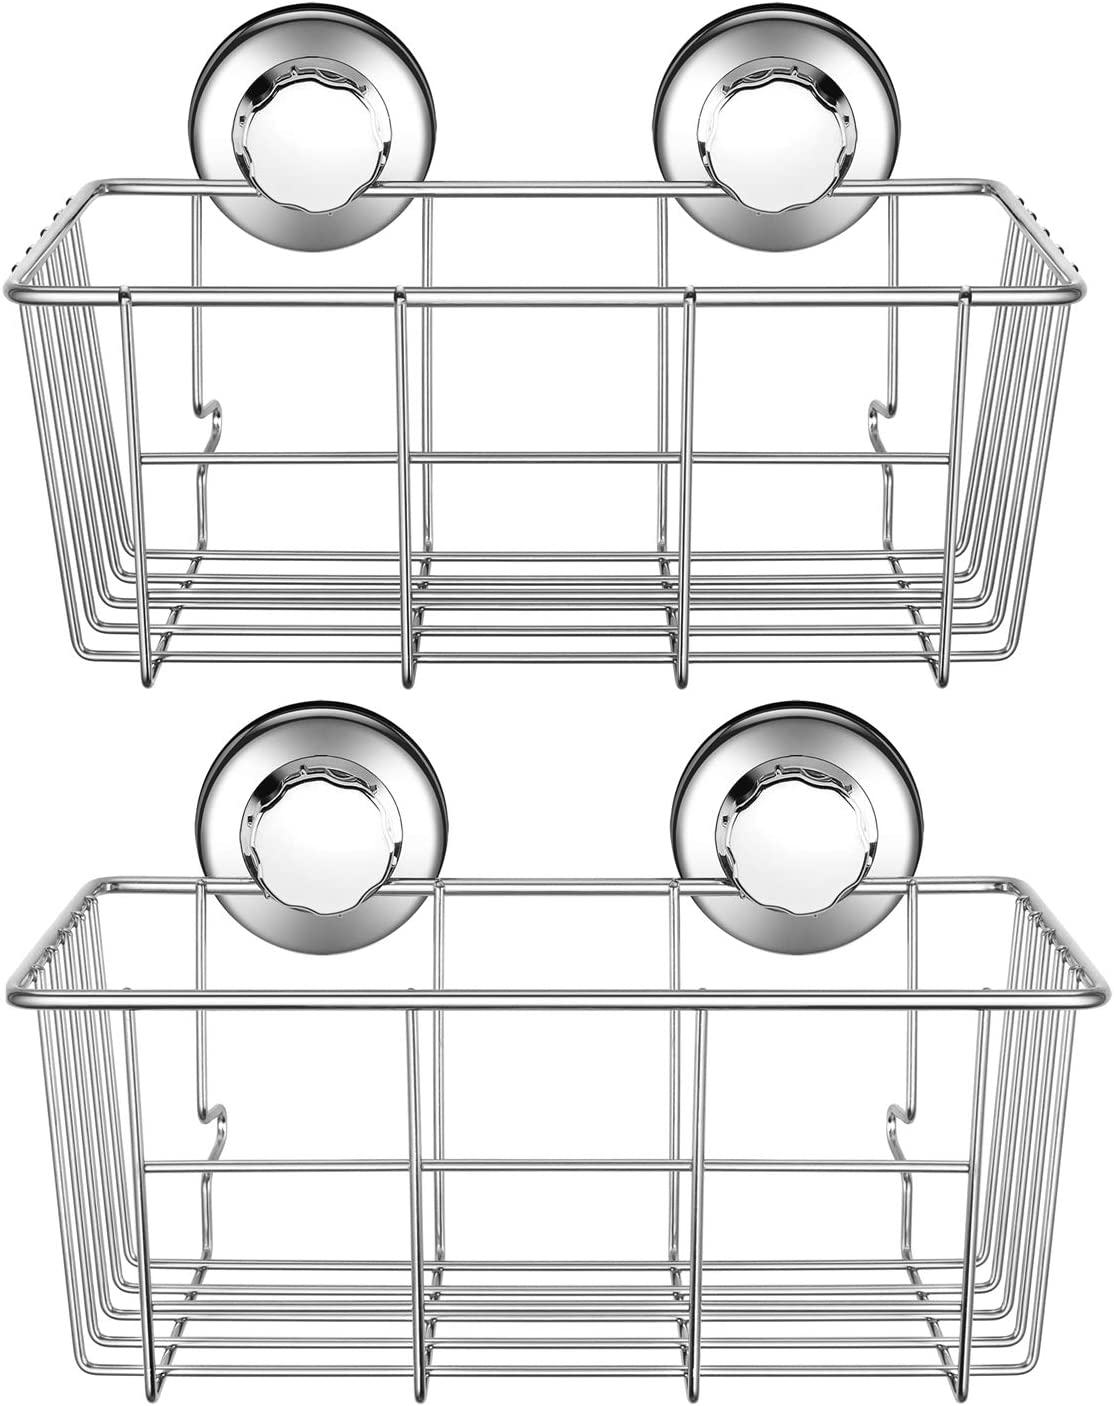 iPEGTOP L-7 Adhesive Suction Cup Deep Caddy Bath Organizer Wall Shelf for Large Shampoo Shower Gel Holder Bathroom Accessories Storage-Rustproof 304 Stainless Steel, 2-Pack, 2 Pack